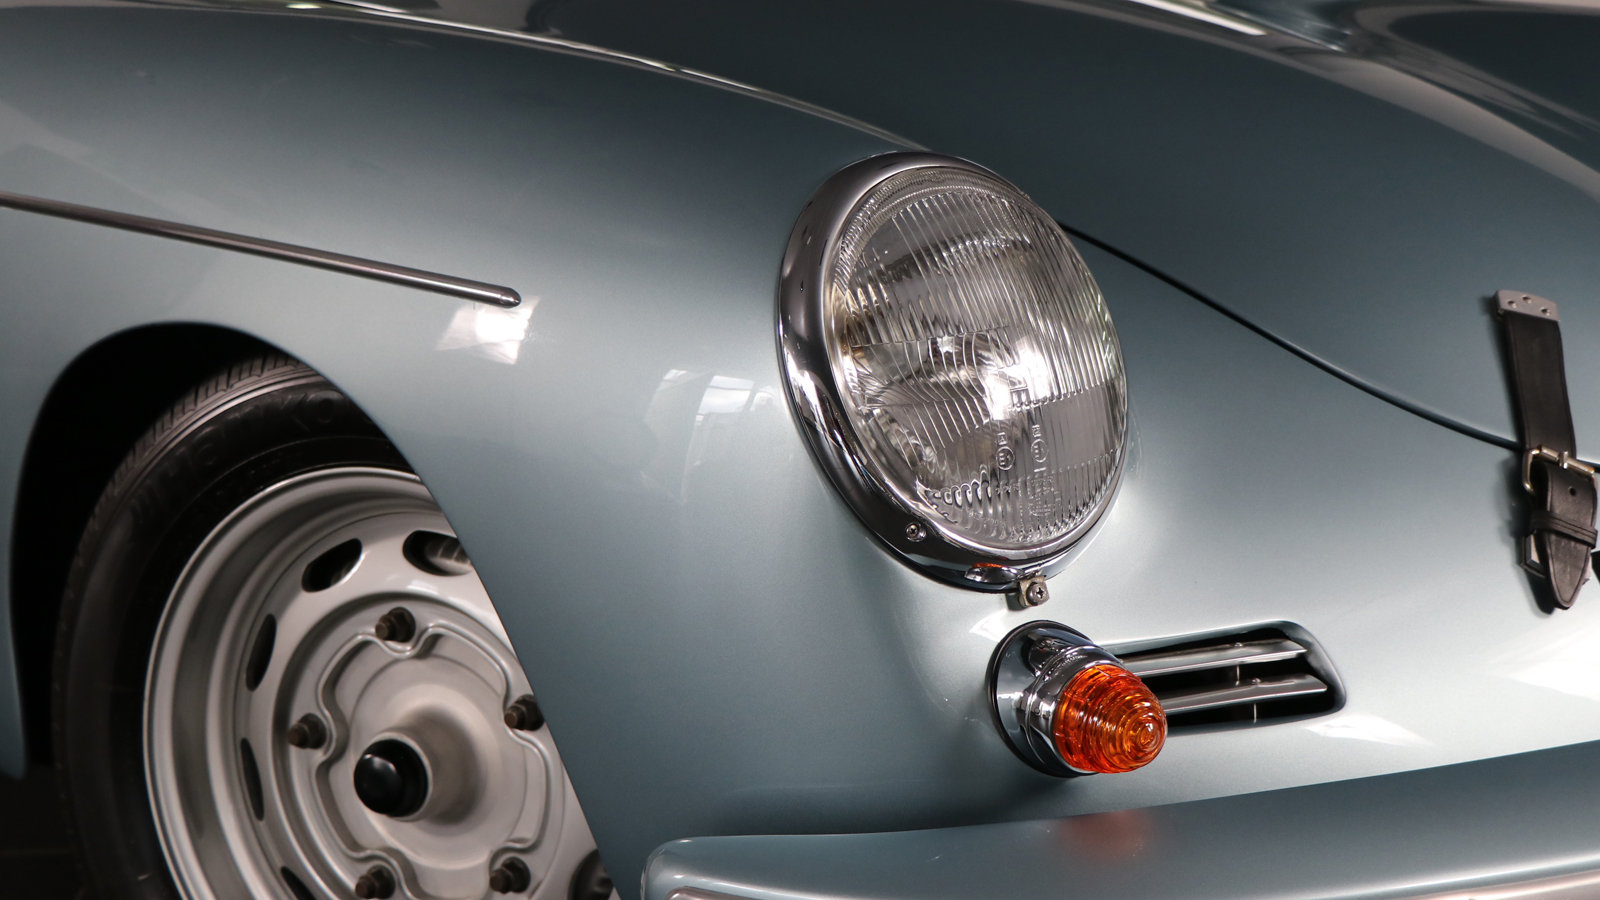 1961 Porsche 356 B Roadster Rod Emory Restoration  For Sale (picture 6 of 6)